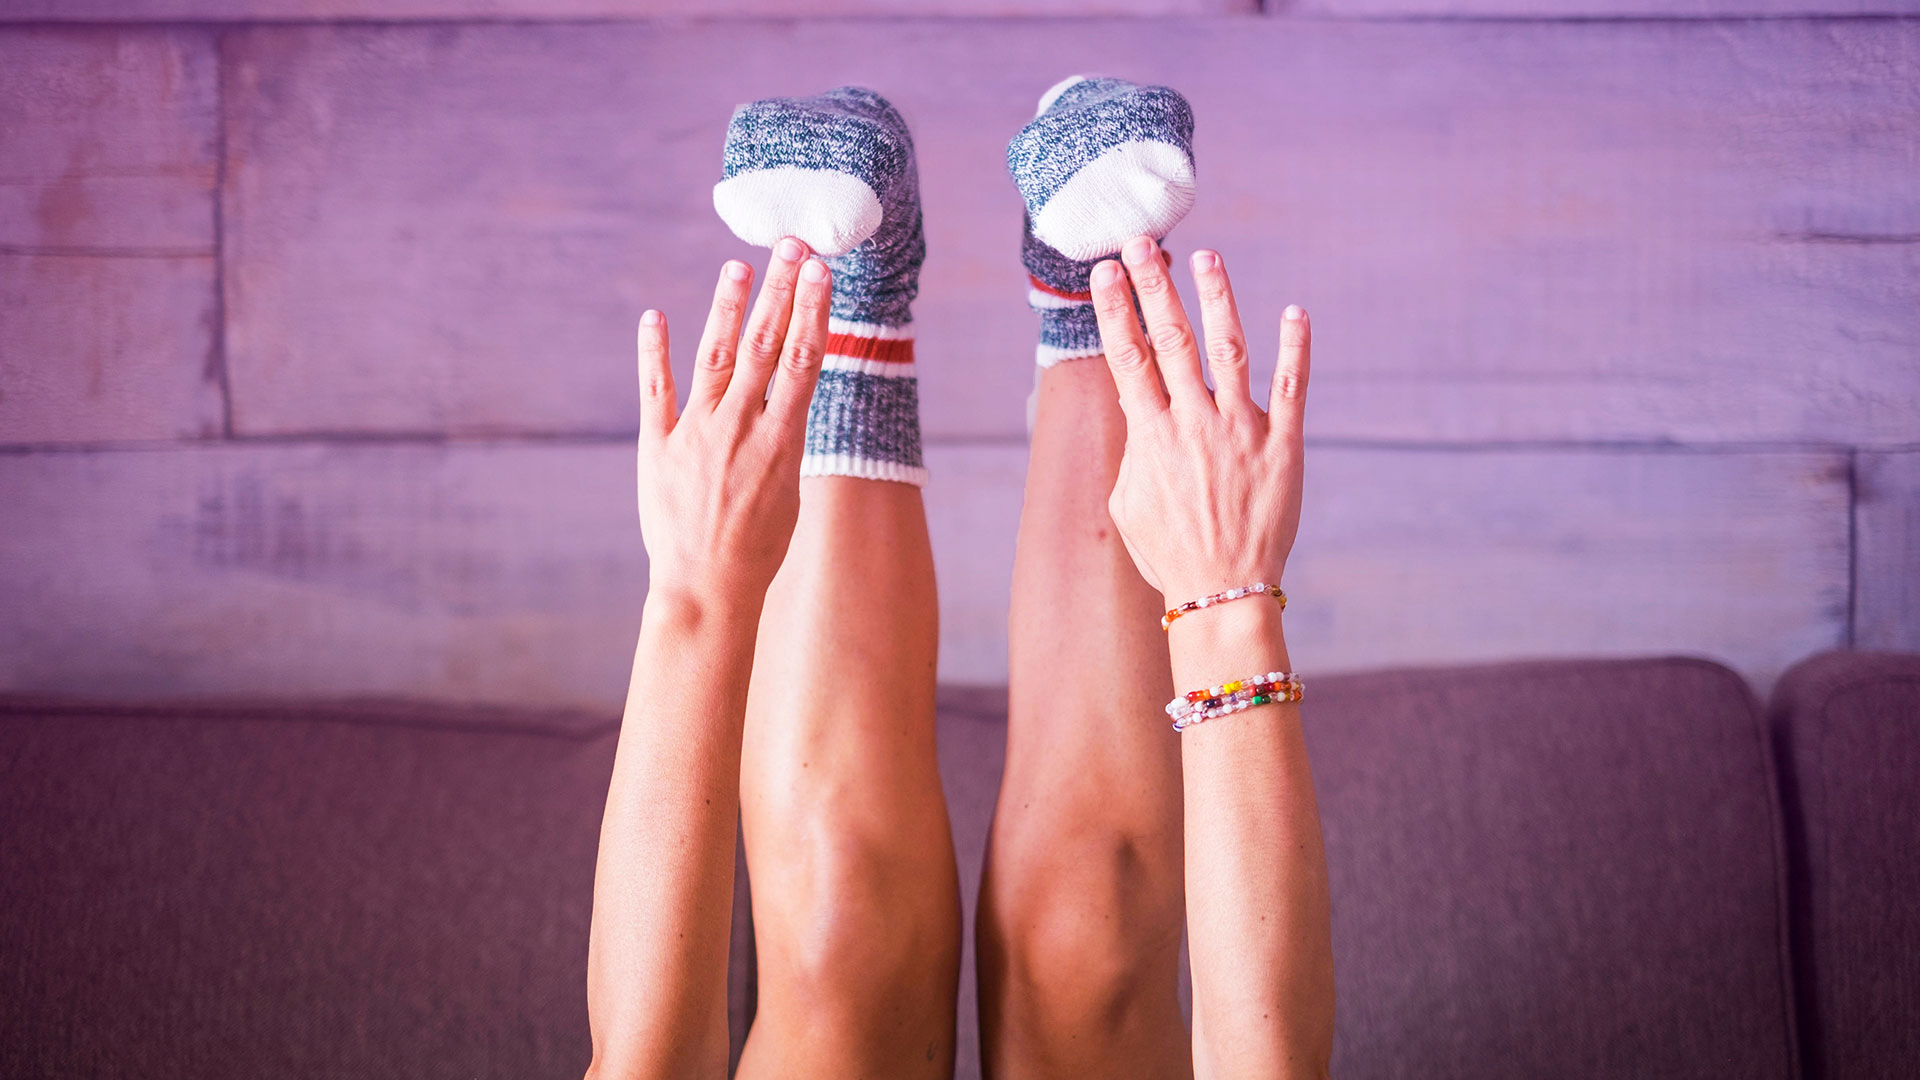 Easy Workouts You Can Do Without Leaving the Comfort of Your Bed or Couch